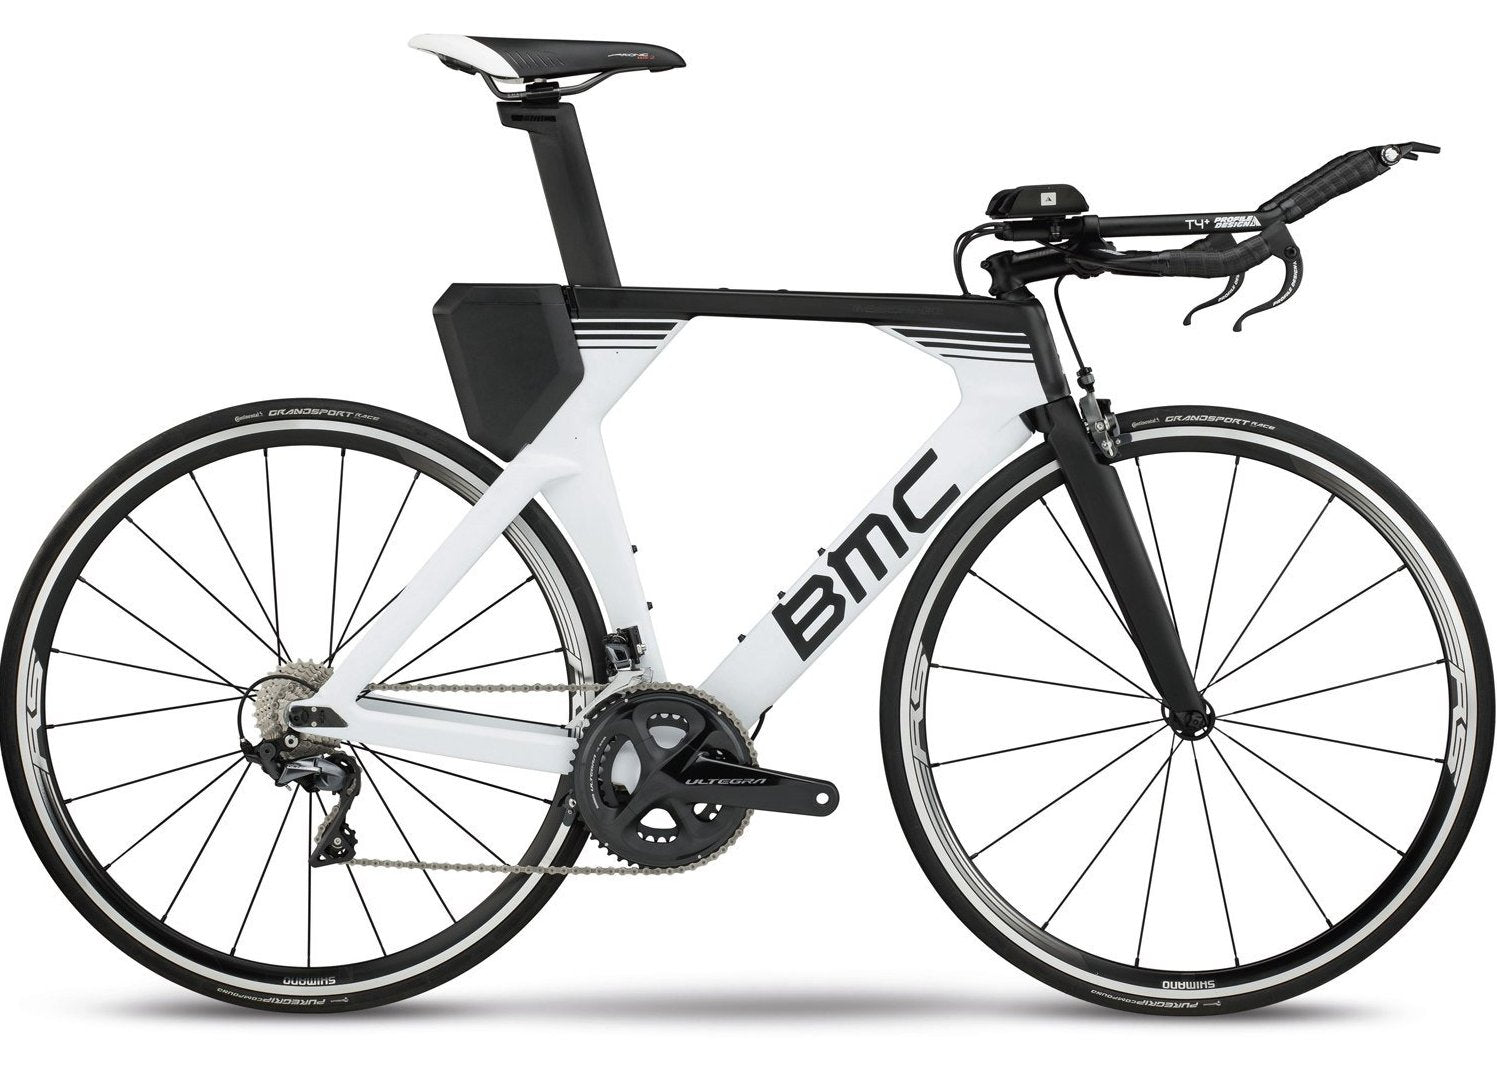 2018 BMC Timemachine02 TWO - Ultegra Tri Bike - White